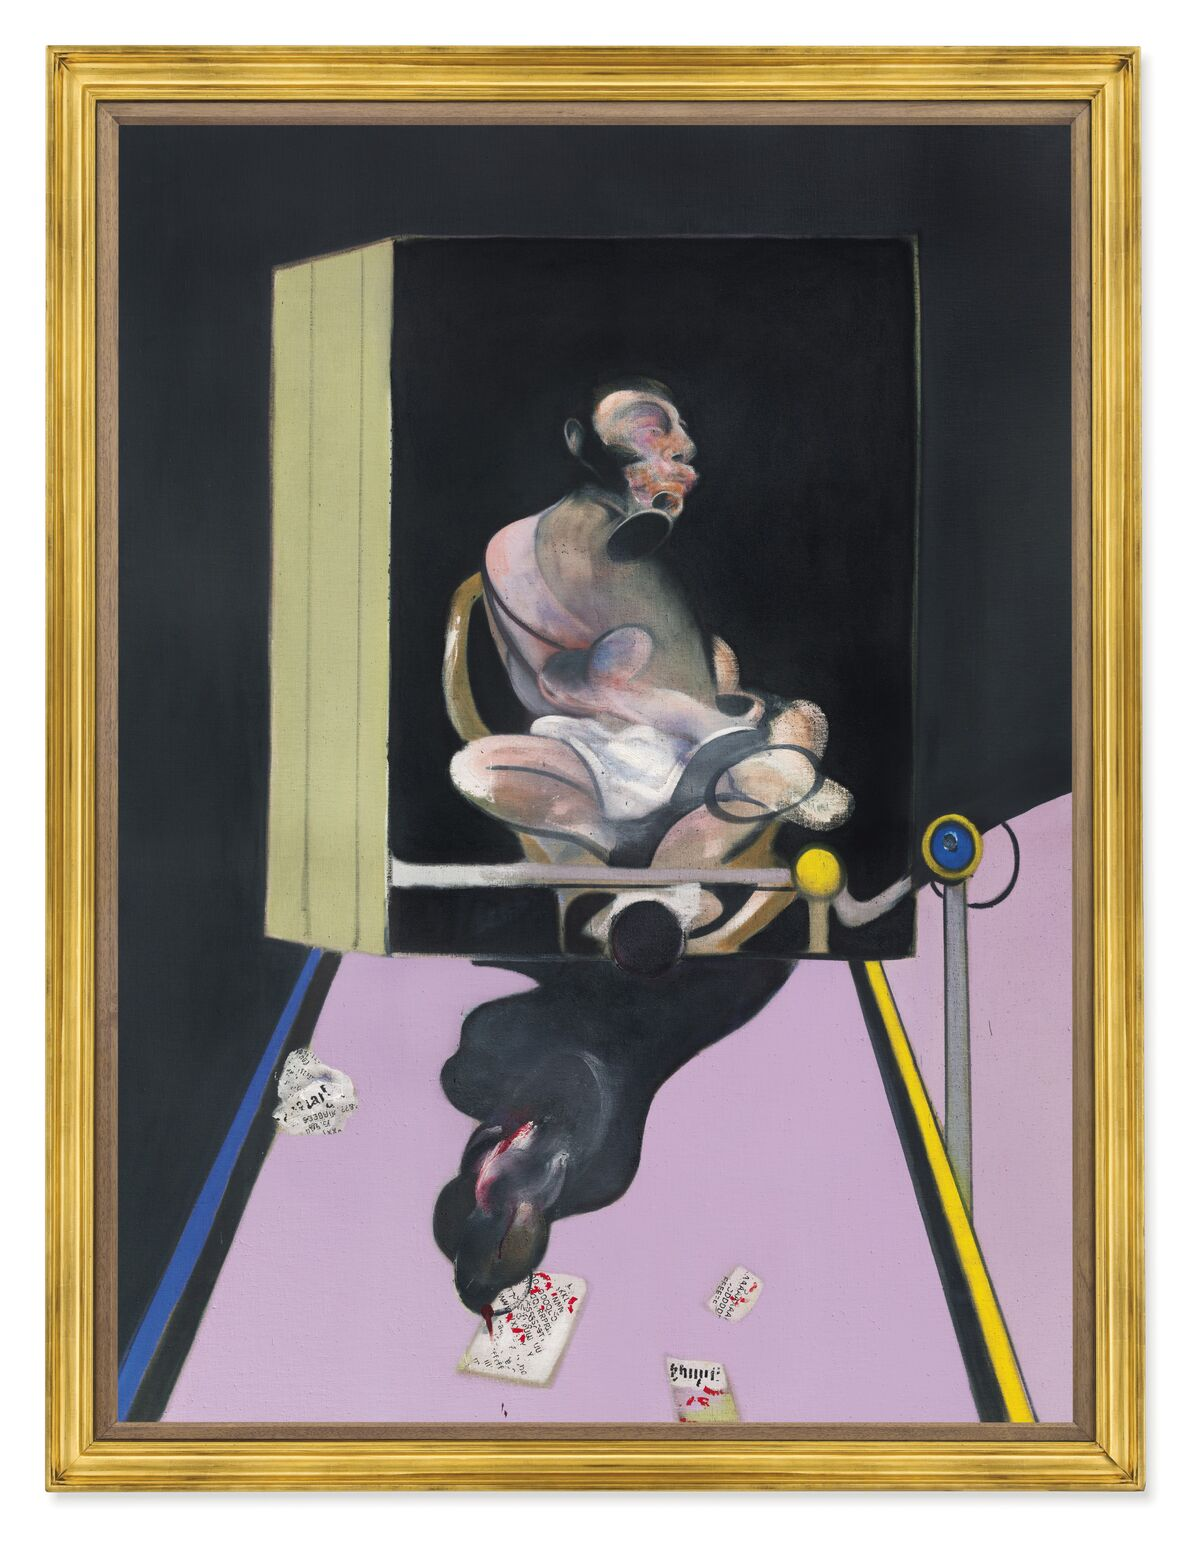 Francis Bacon, Study for Portrait, 1977. Courtesy of Christie's.